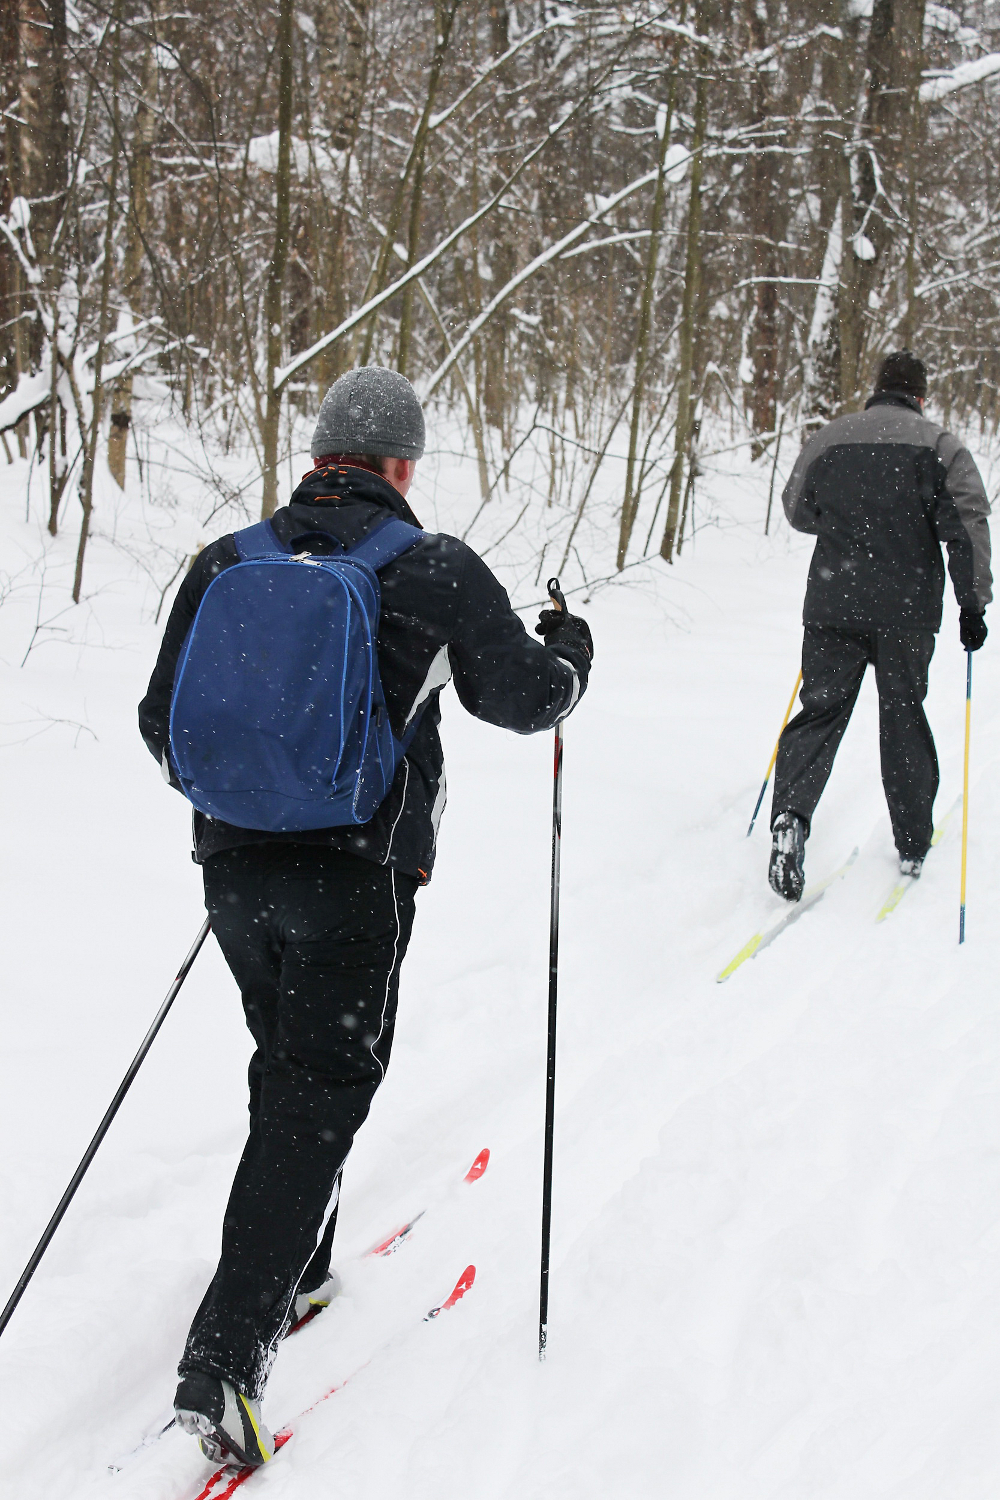 Cross-country skiiing